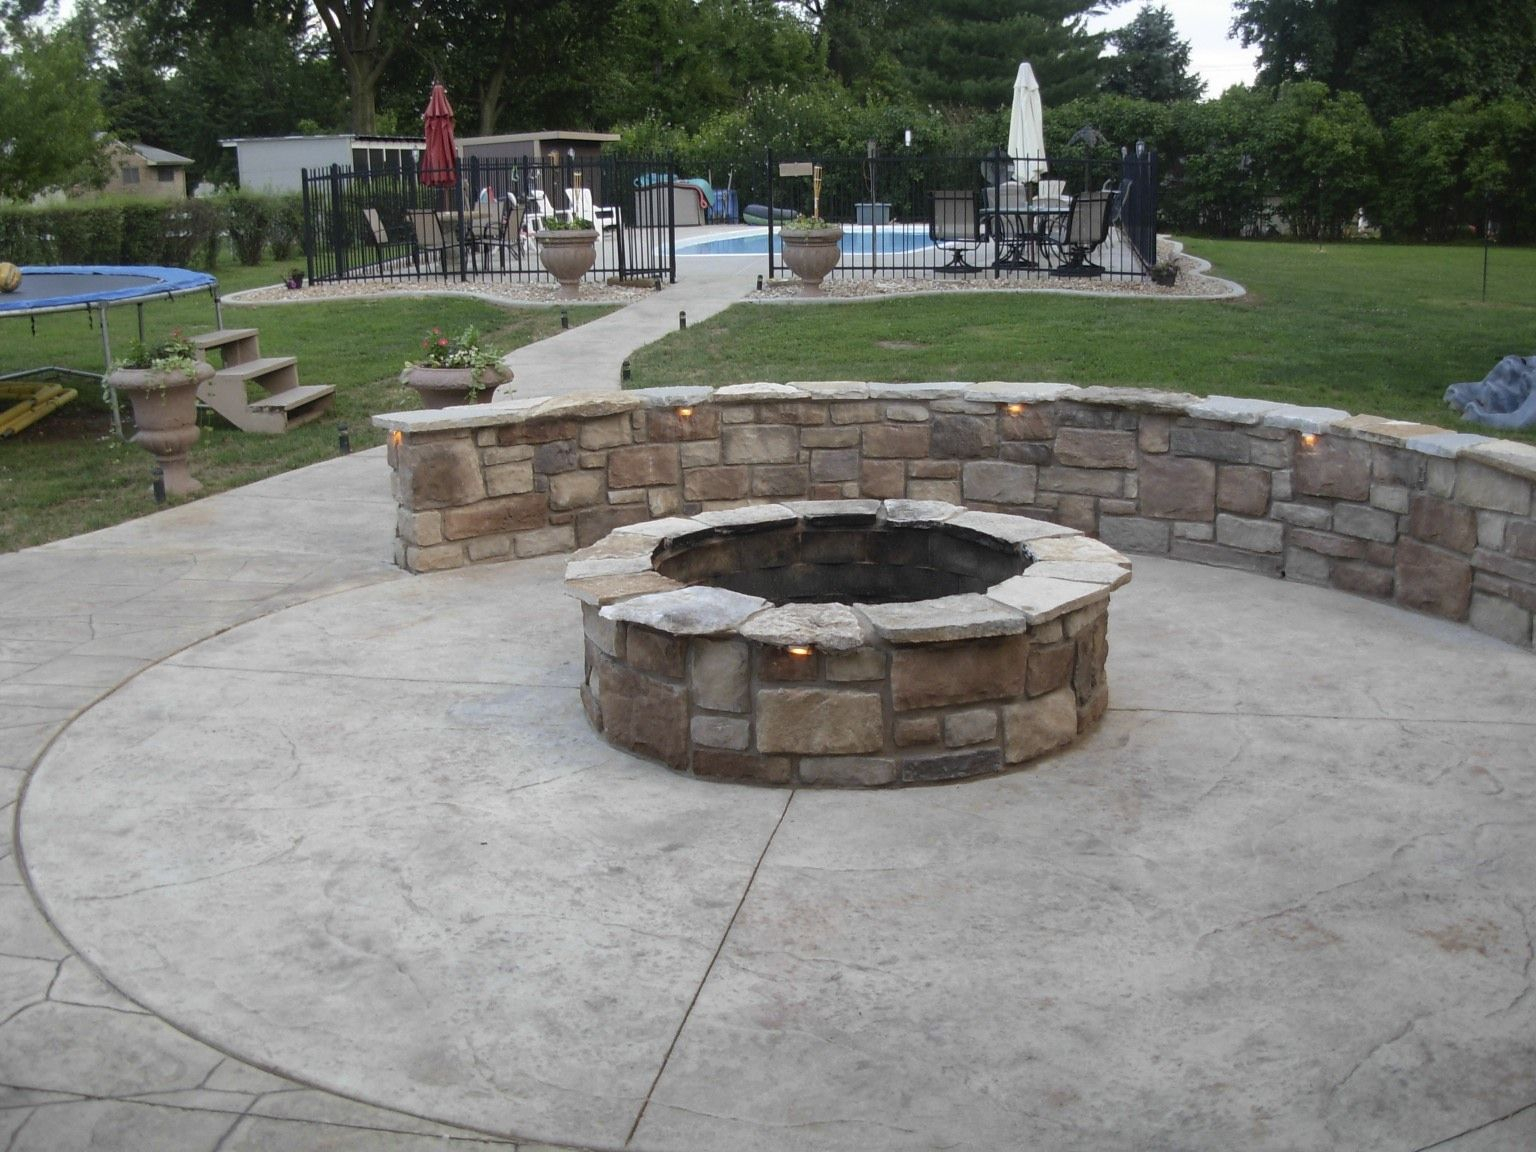 Concrete Patio With Fire Pits Pictures Fire Pit Sitting Wall pertaining to dimensions 1536 X 1152